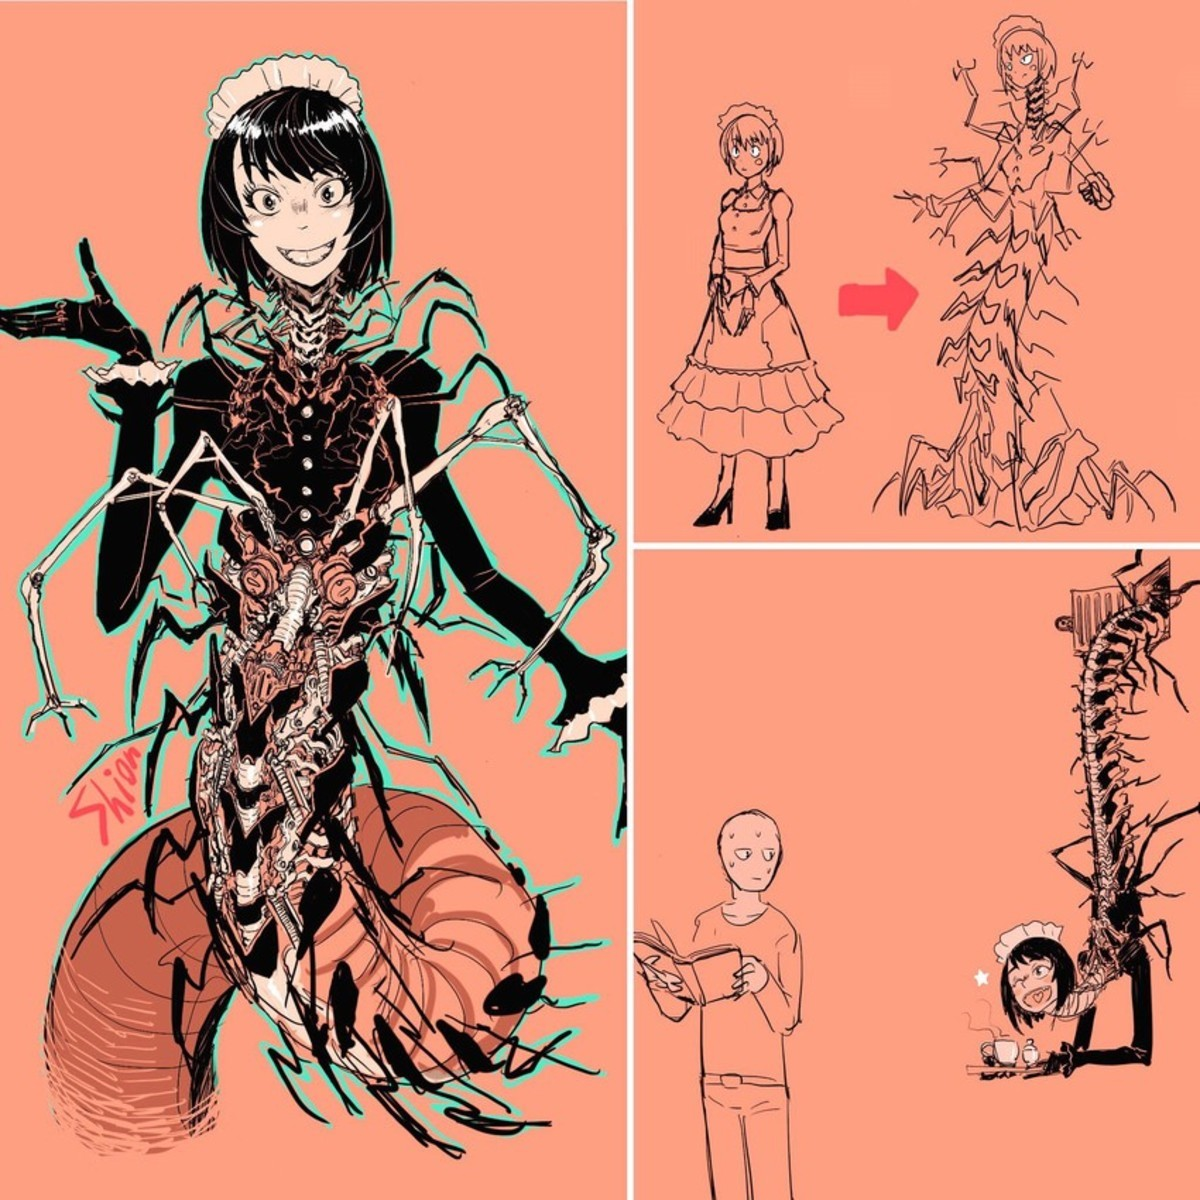 bugged. join list: Weirdfetishthings (1187 subs)Mention History.. Entoma from Overlord wishes she could be half this cool